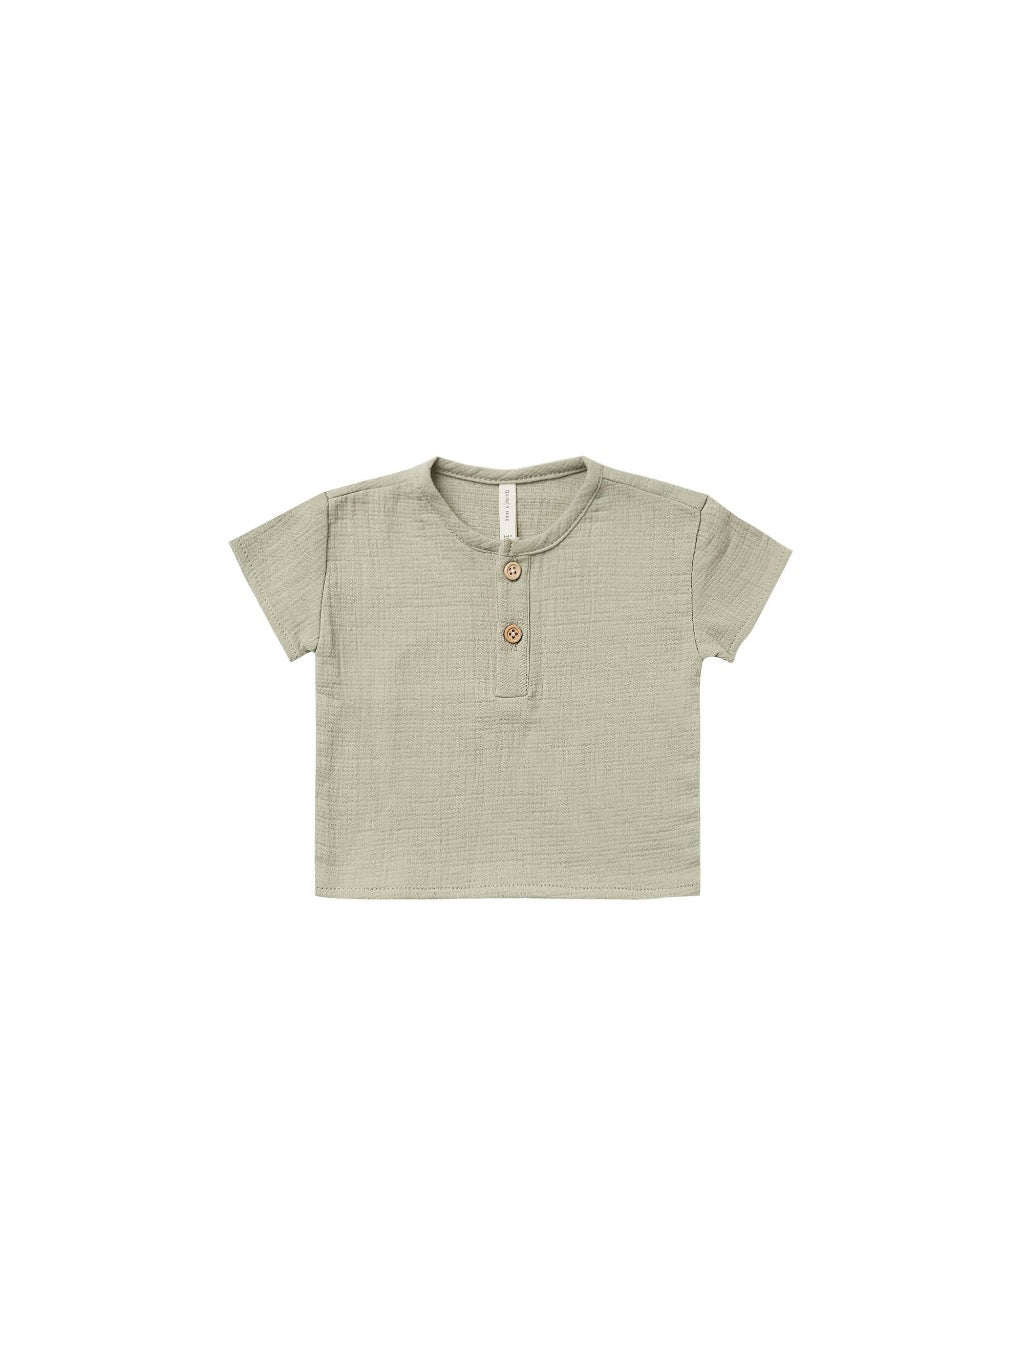 Quincy Mae Woven Henry Top in Sage